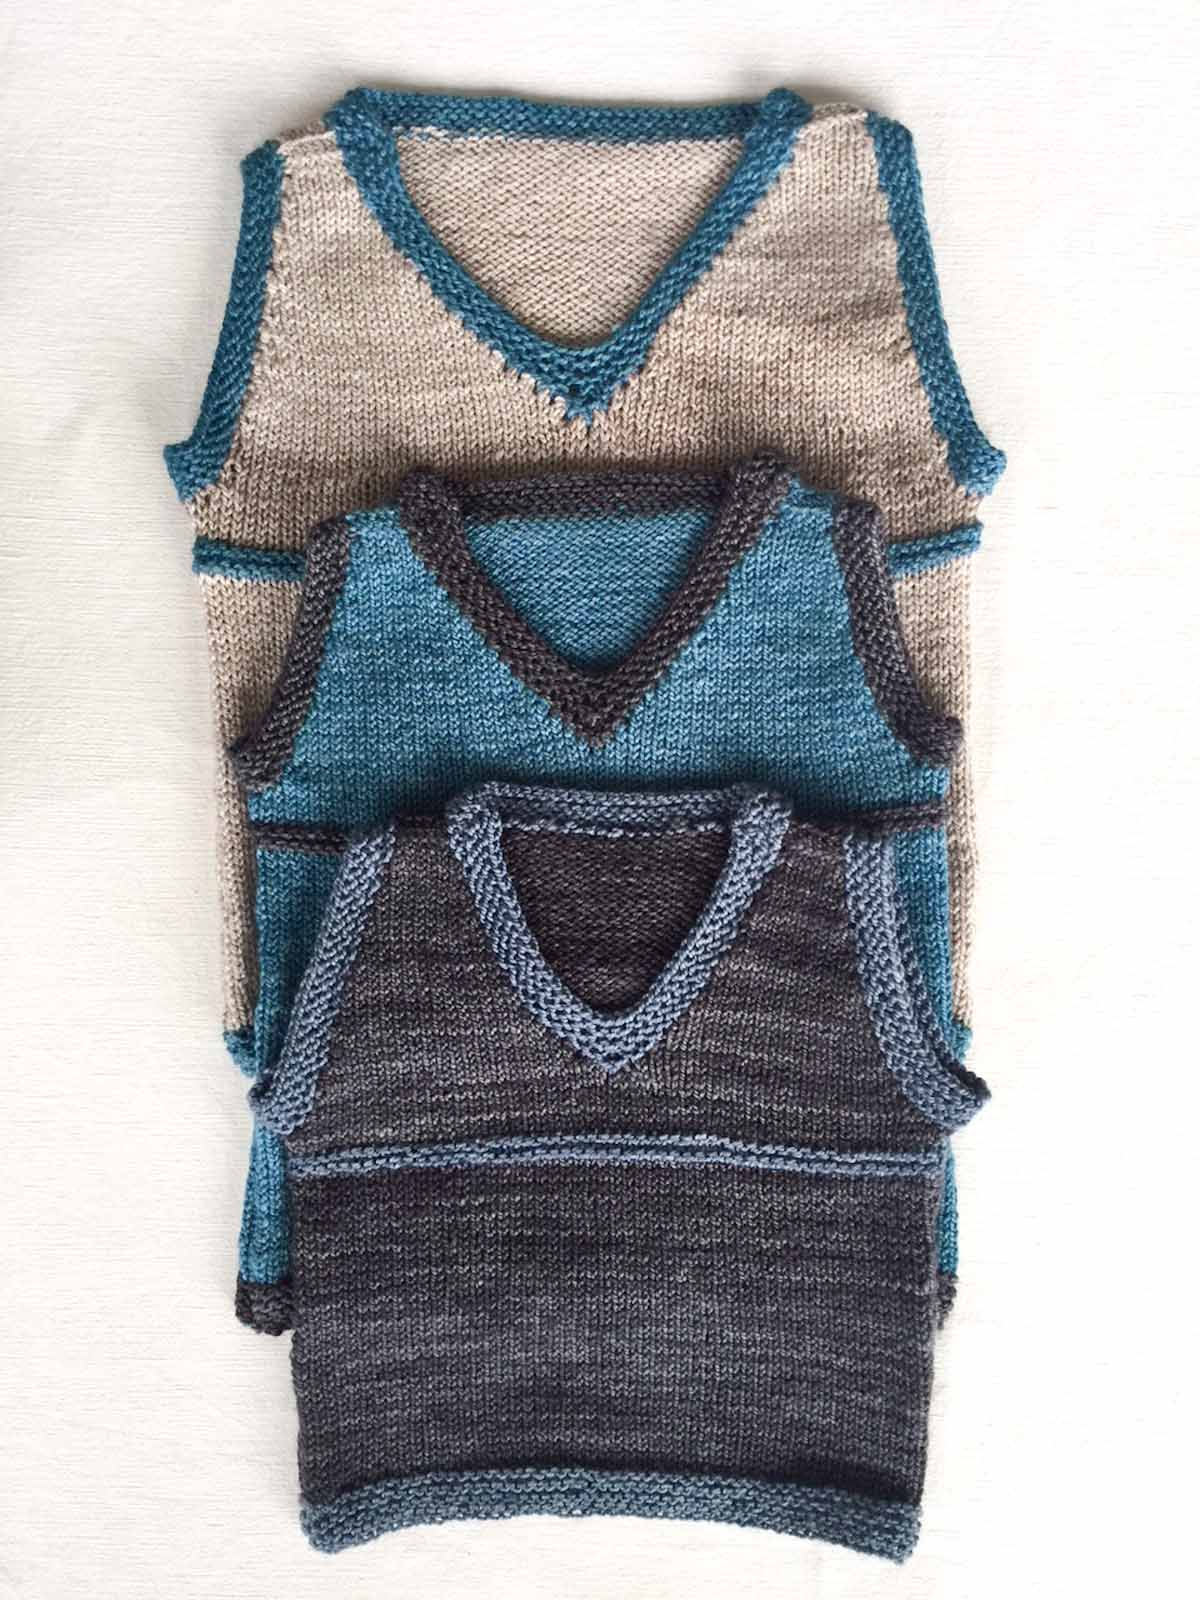 Free Knitting Patterns For Boys Cowgirlblues Free Knit Pattern Sleeveless Vest Boys Cowgirlblues